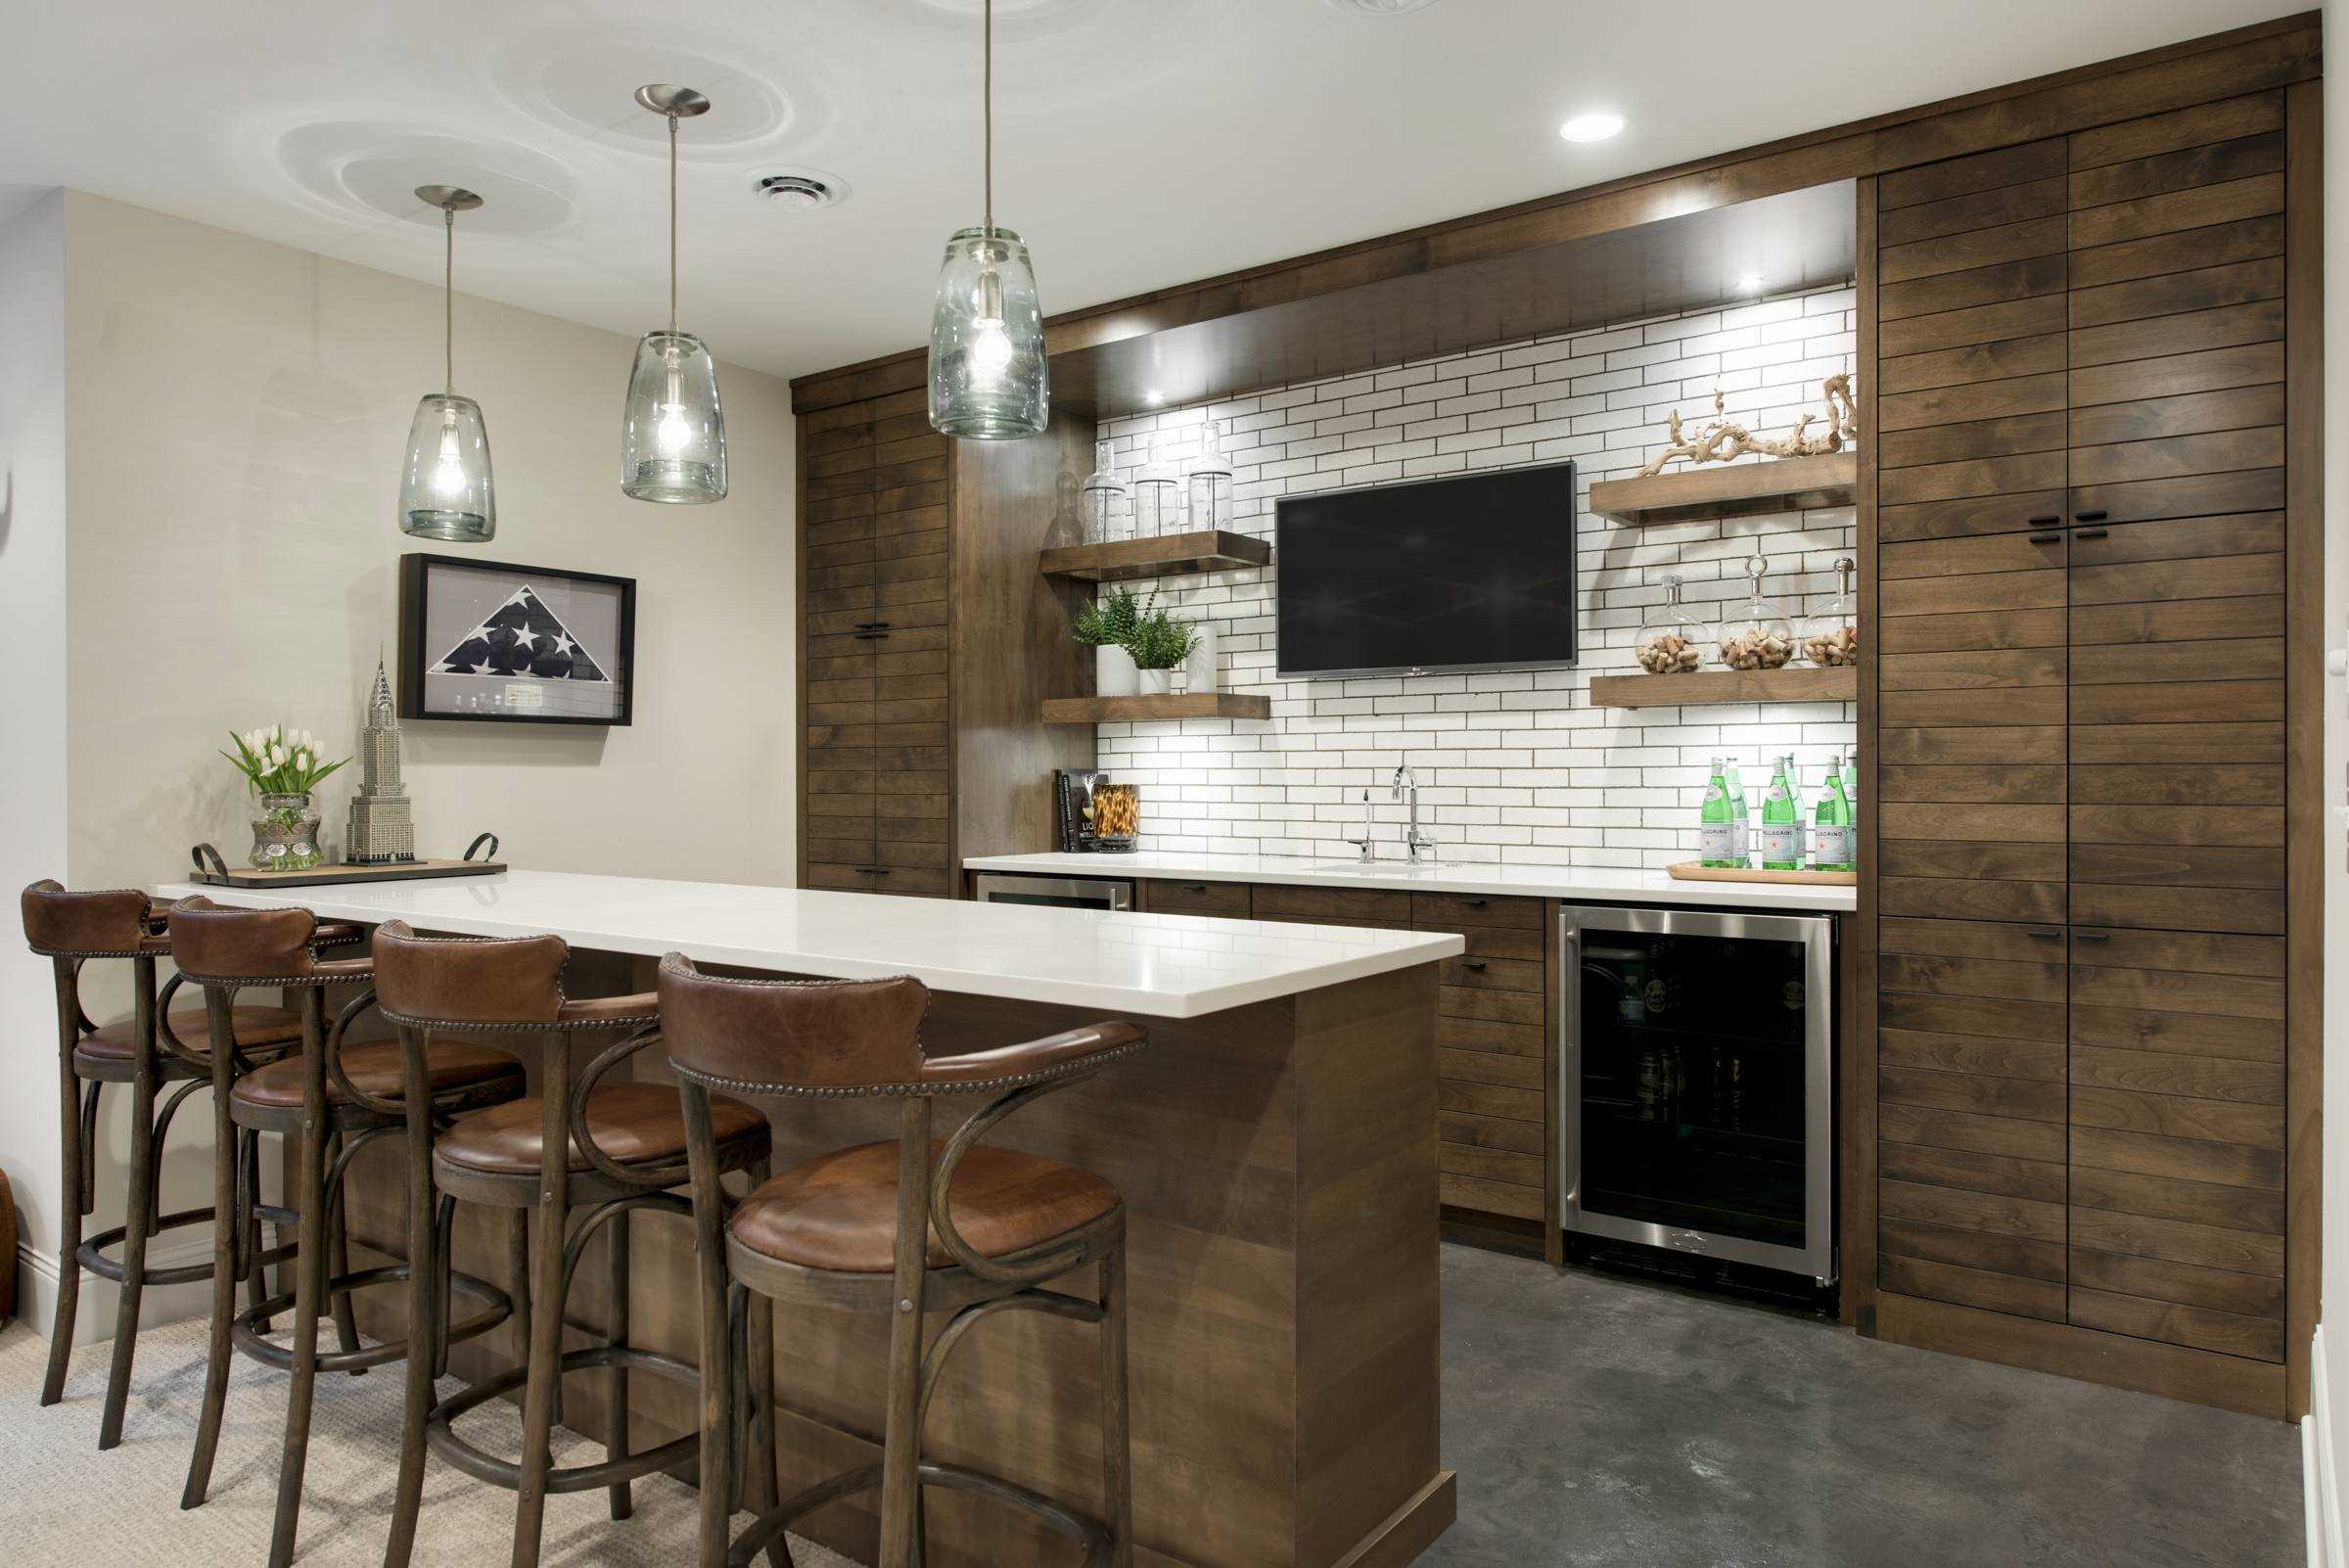 Best Kitchen Gallery: 15 Distinguished Rustic Home Bar Designs For When You Really Need of Design A Home Bar  on rachelxblog.com